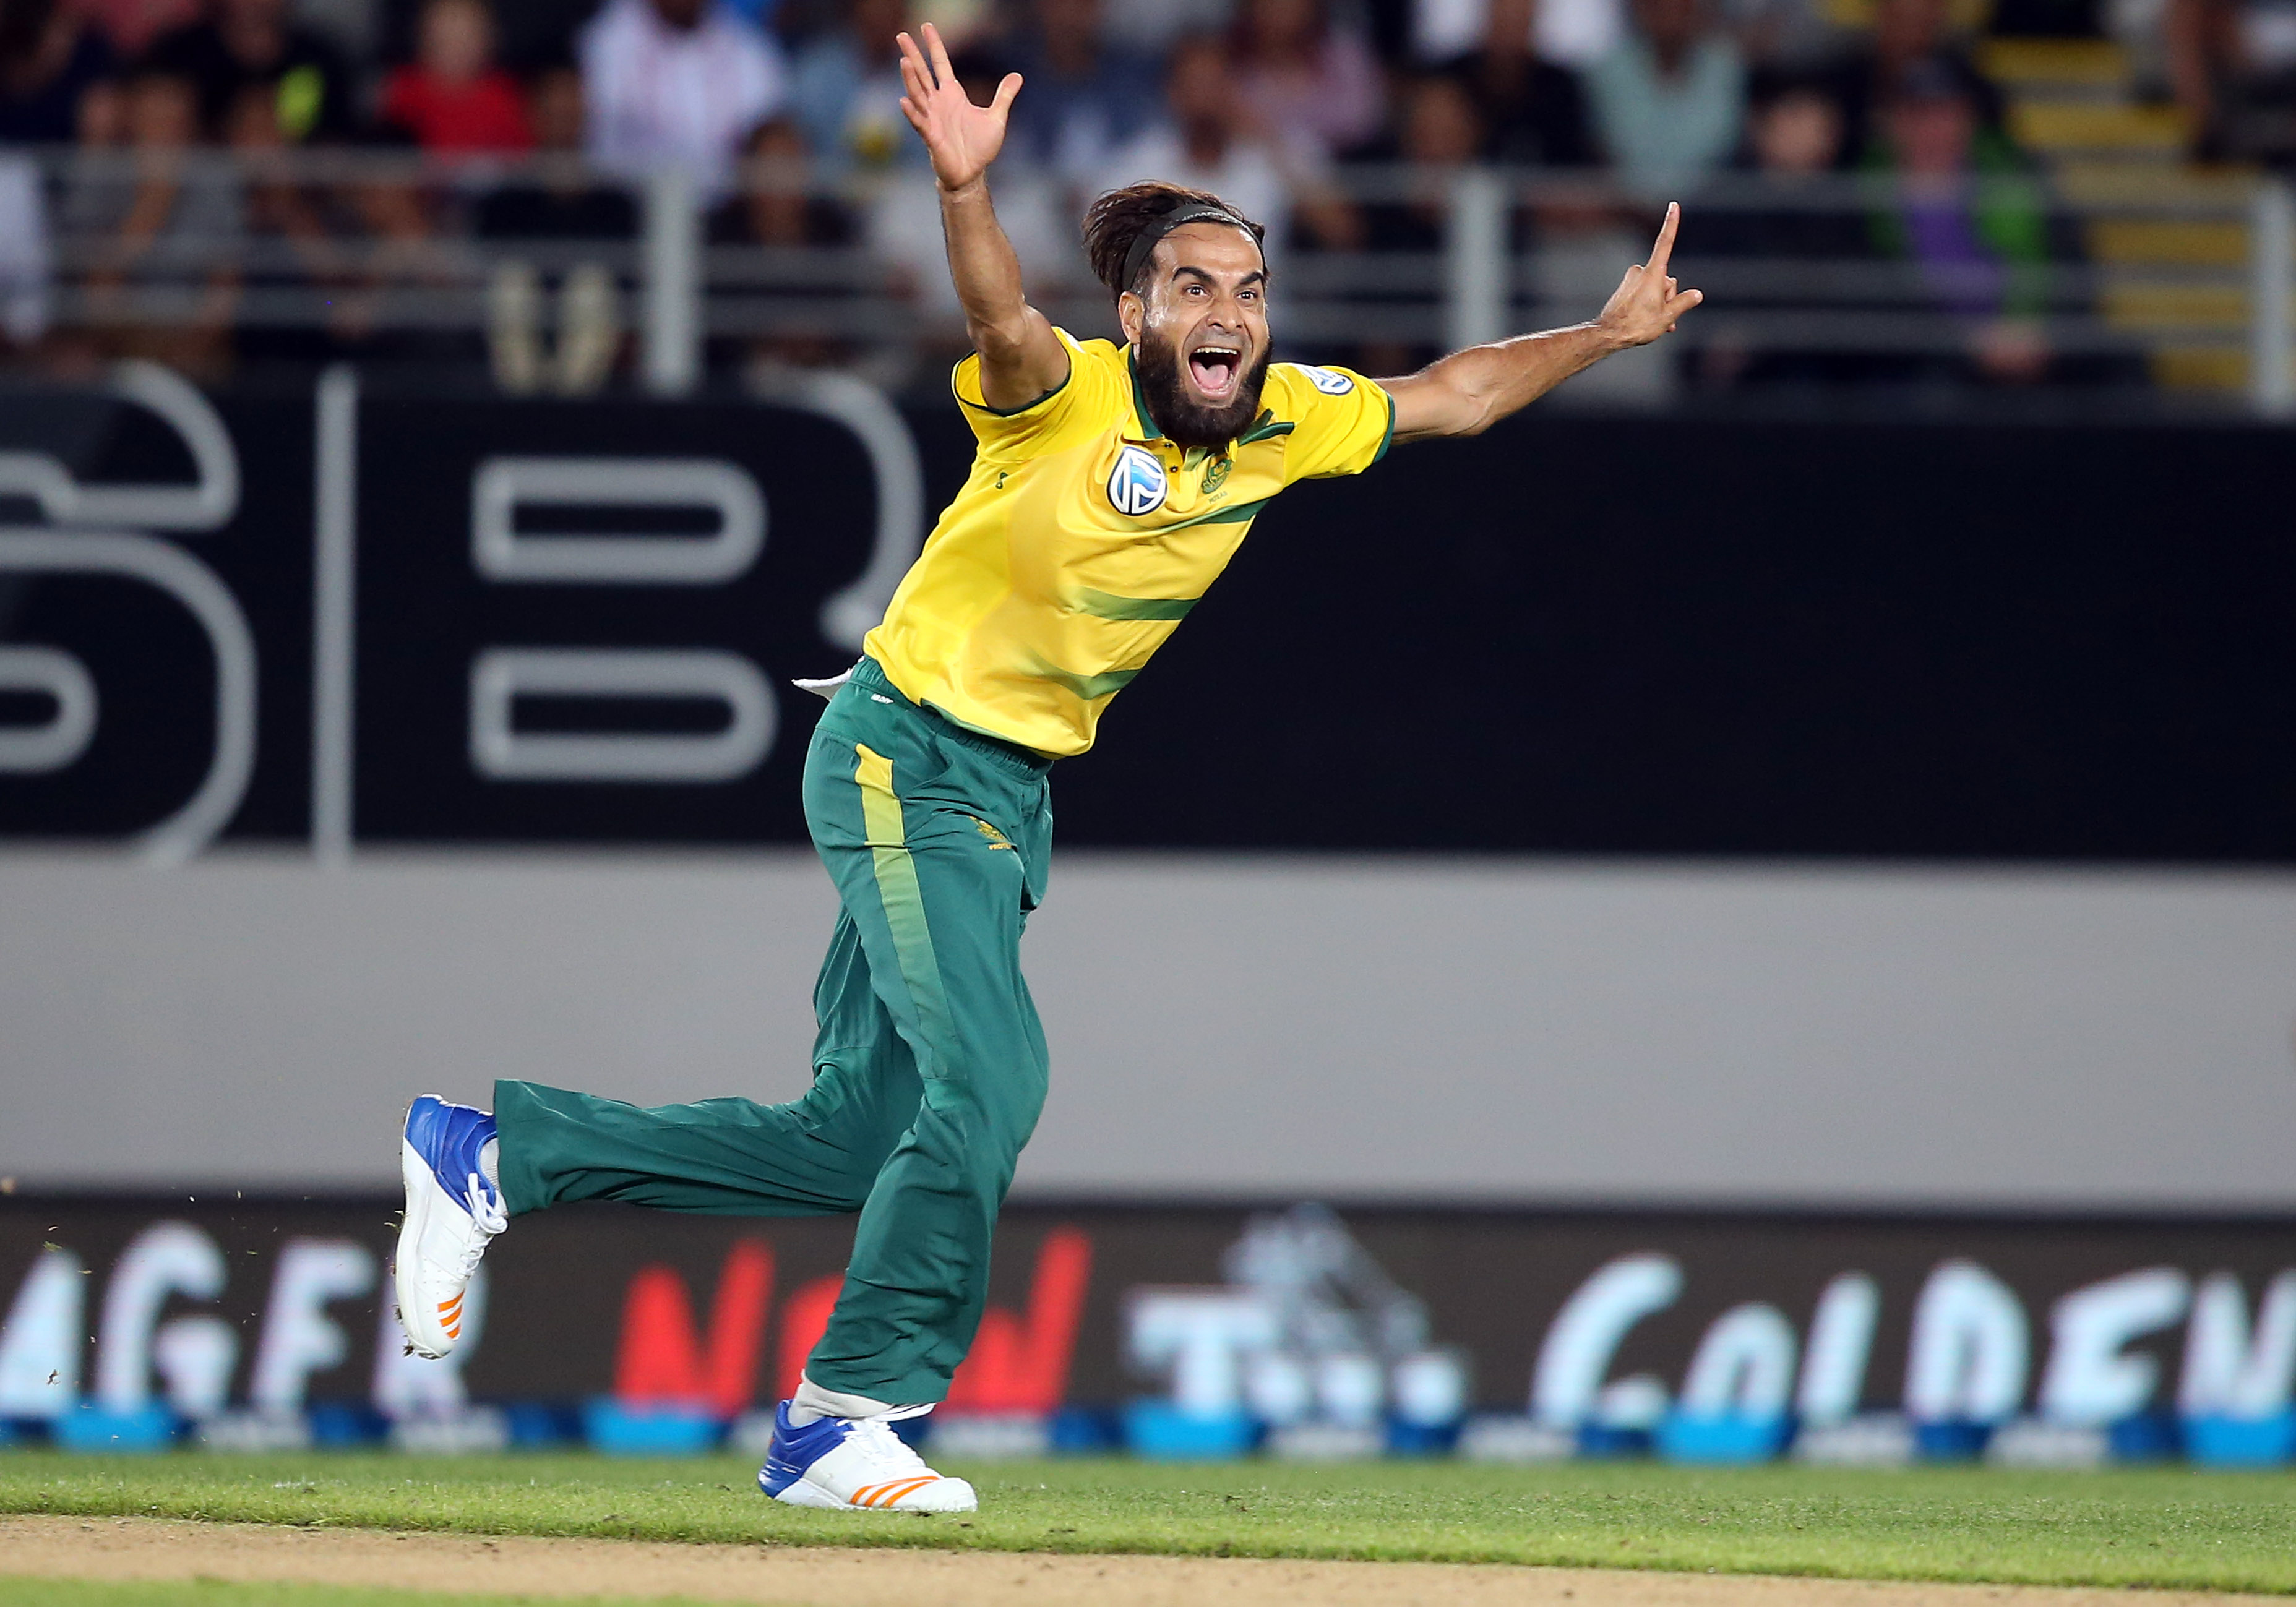 Imran Tahir is the World No 1 bowler in both limited-overs formats right now. AFP